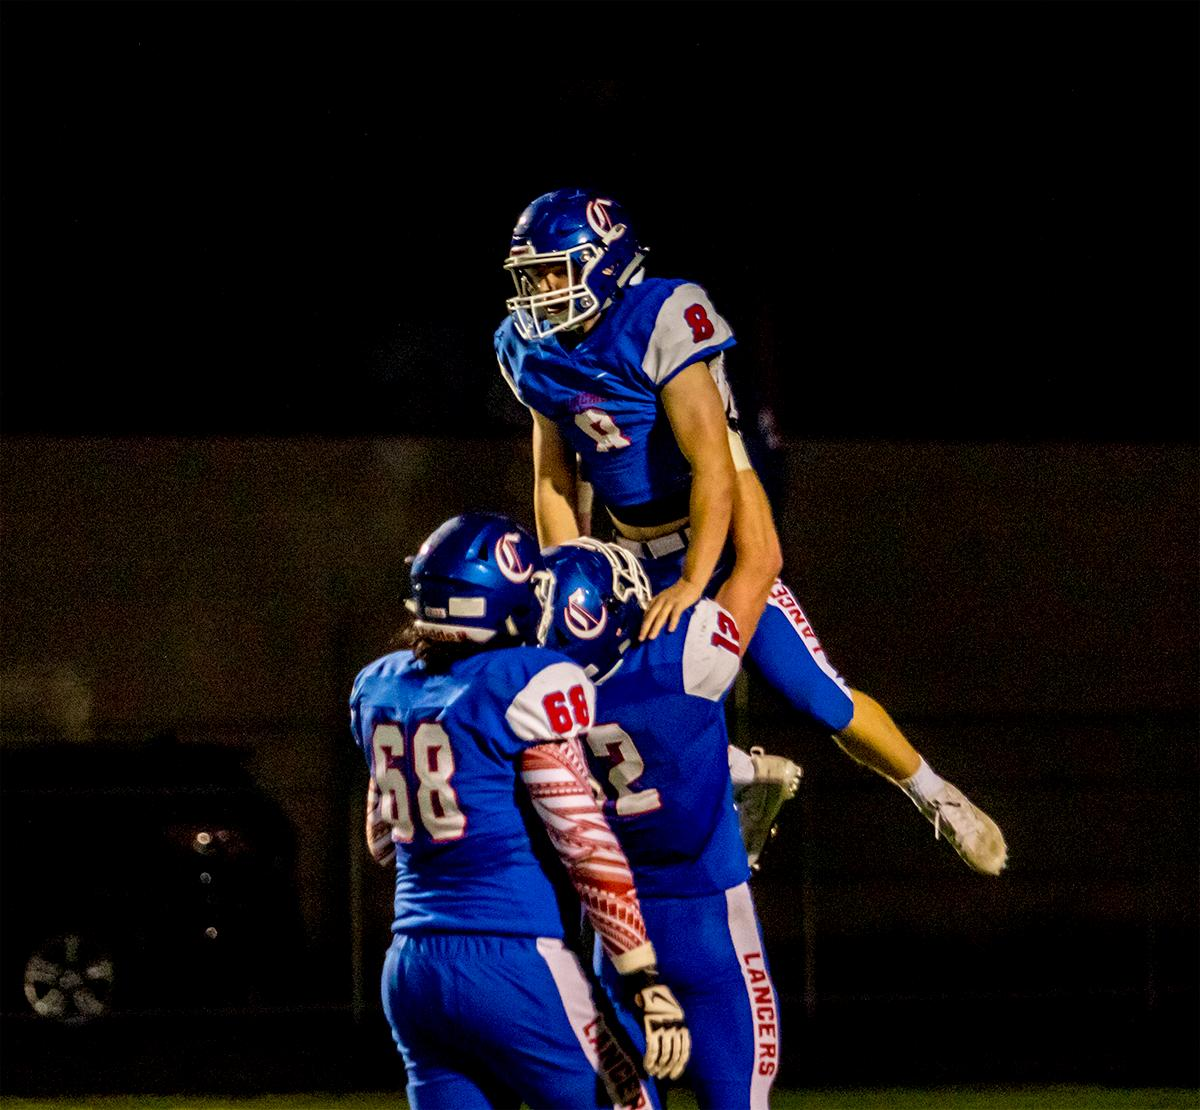 Churchill's Jax Arnold (#12) lifts up teammate Dalton McDaniel (#8) after a touchdown. Churchill defeated Crater 63-21 on Friday at their homecoming game. Churchill remains undefeated with a conference record of 9-0. Photo by August Frank, Oregon News Lab